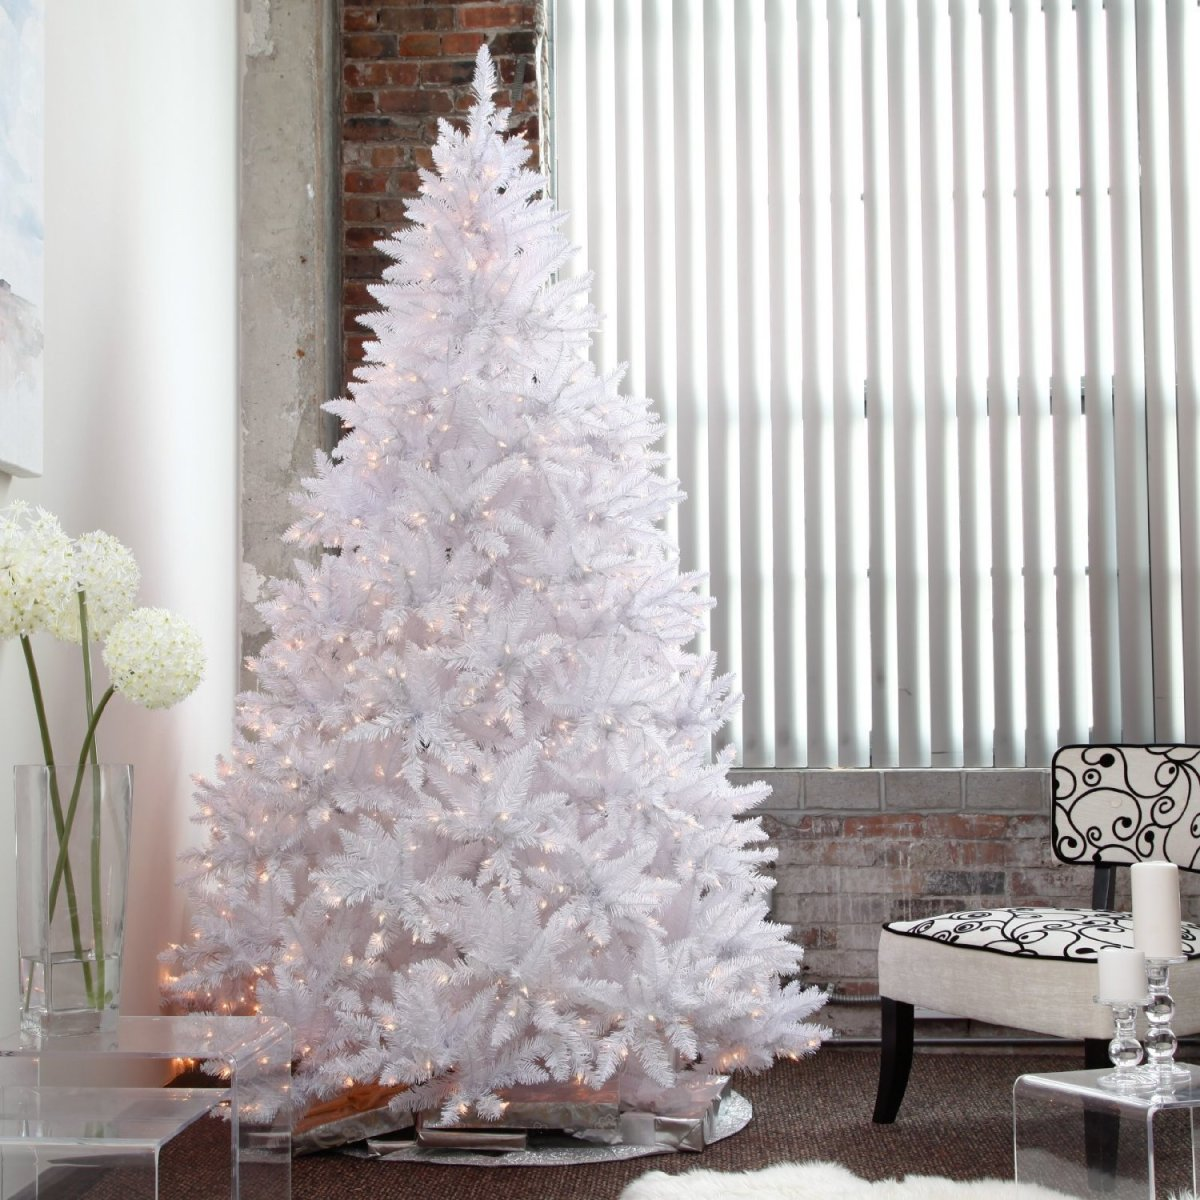 Glam Christmas tree in white.